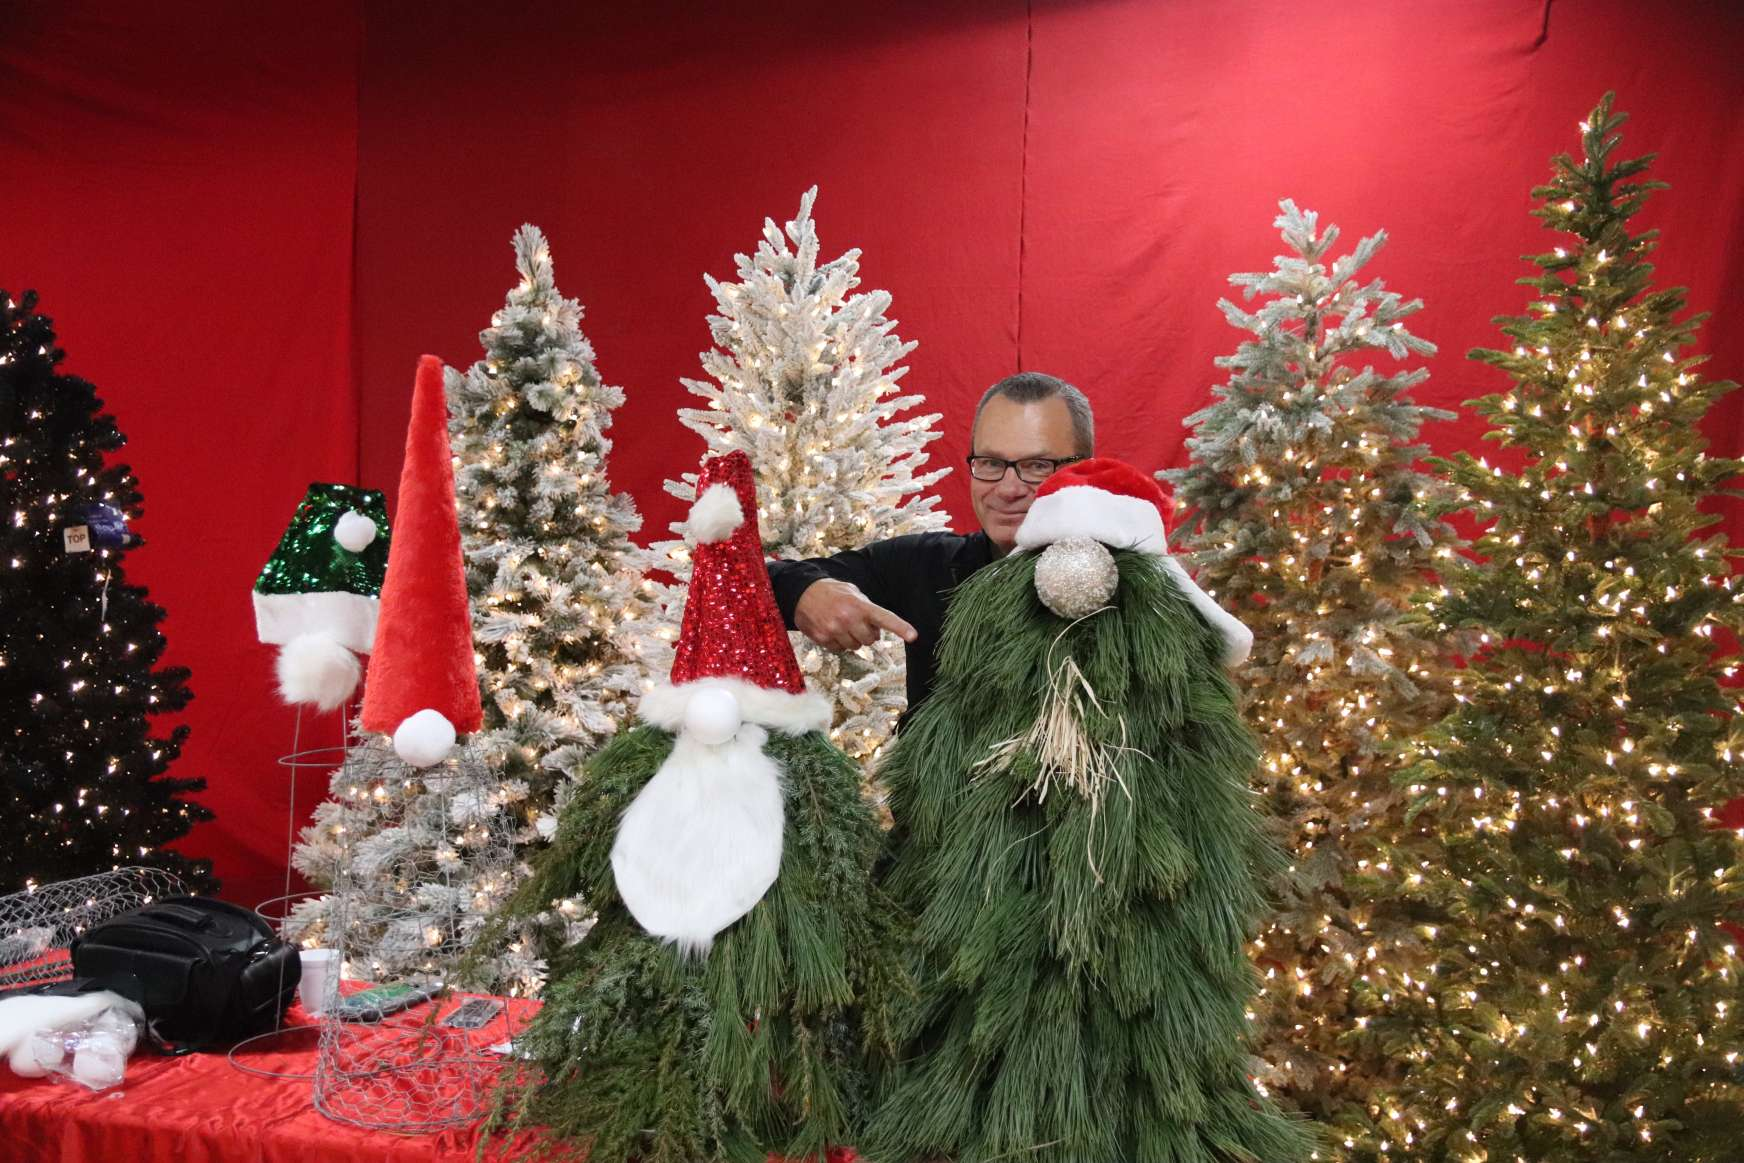 Creating Mythical Holiday Scandinavian Characters with Evergreen Boughs